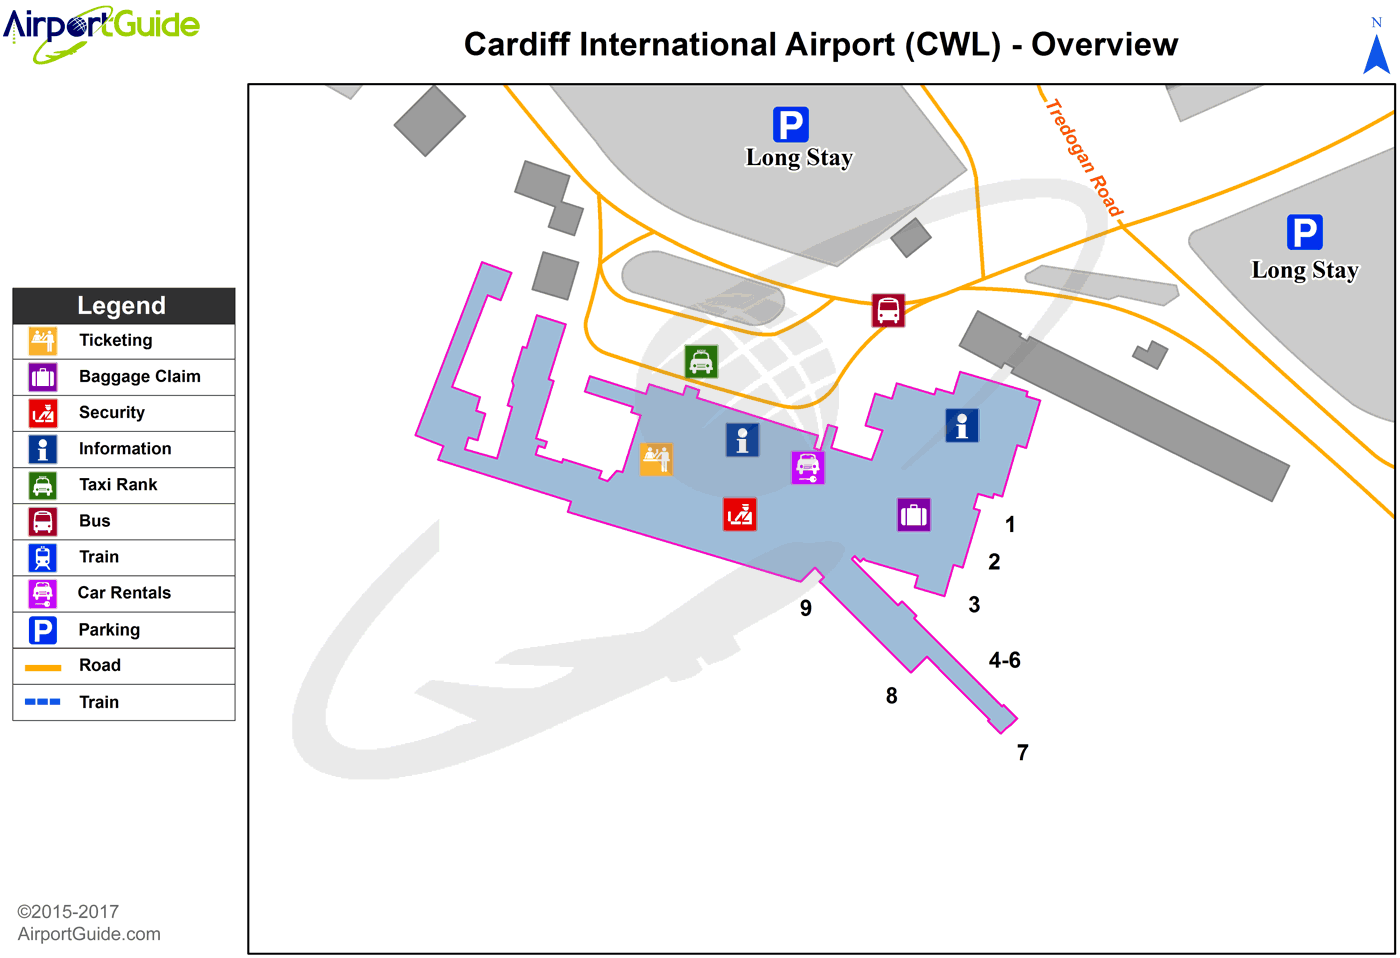 Cardiff - Bicester Airfield (CWL) Airport Terminal Map - Overview